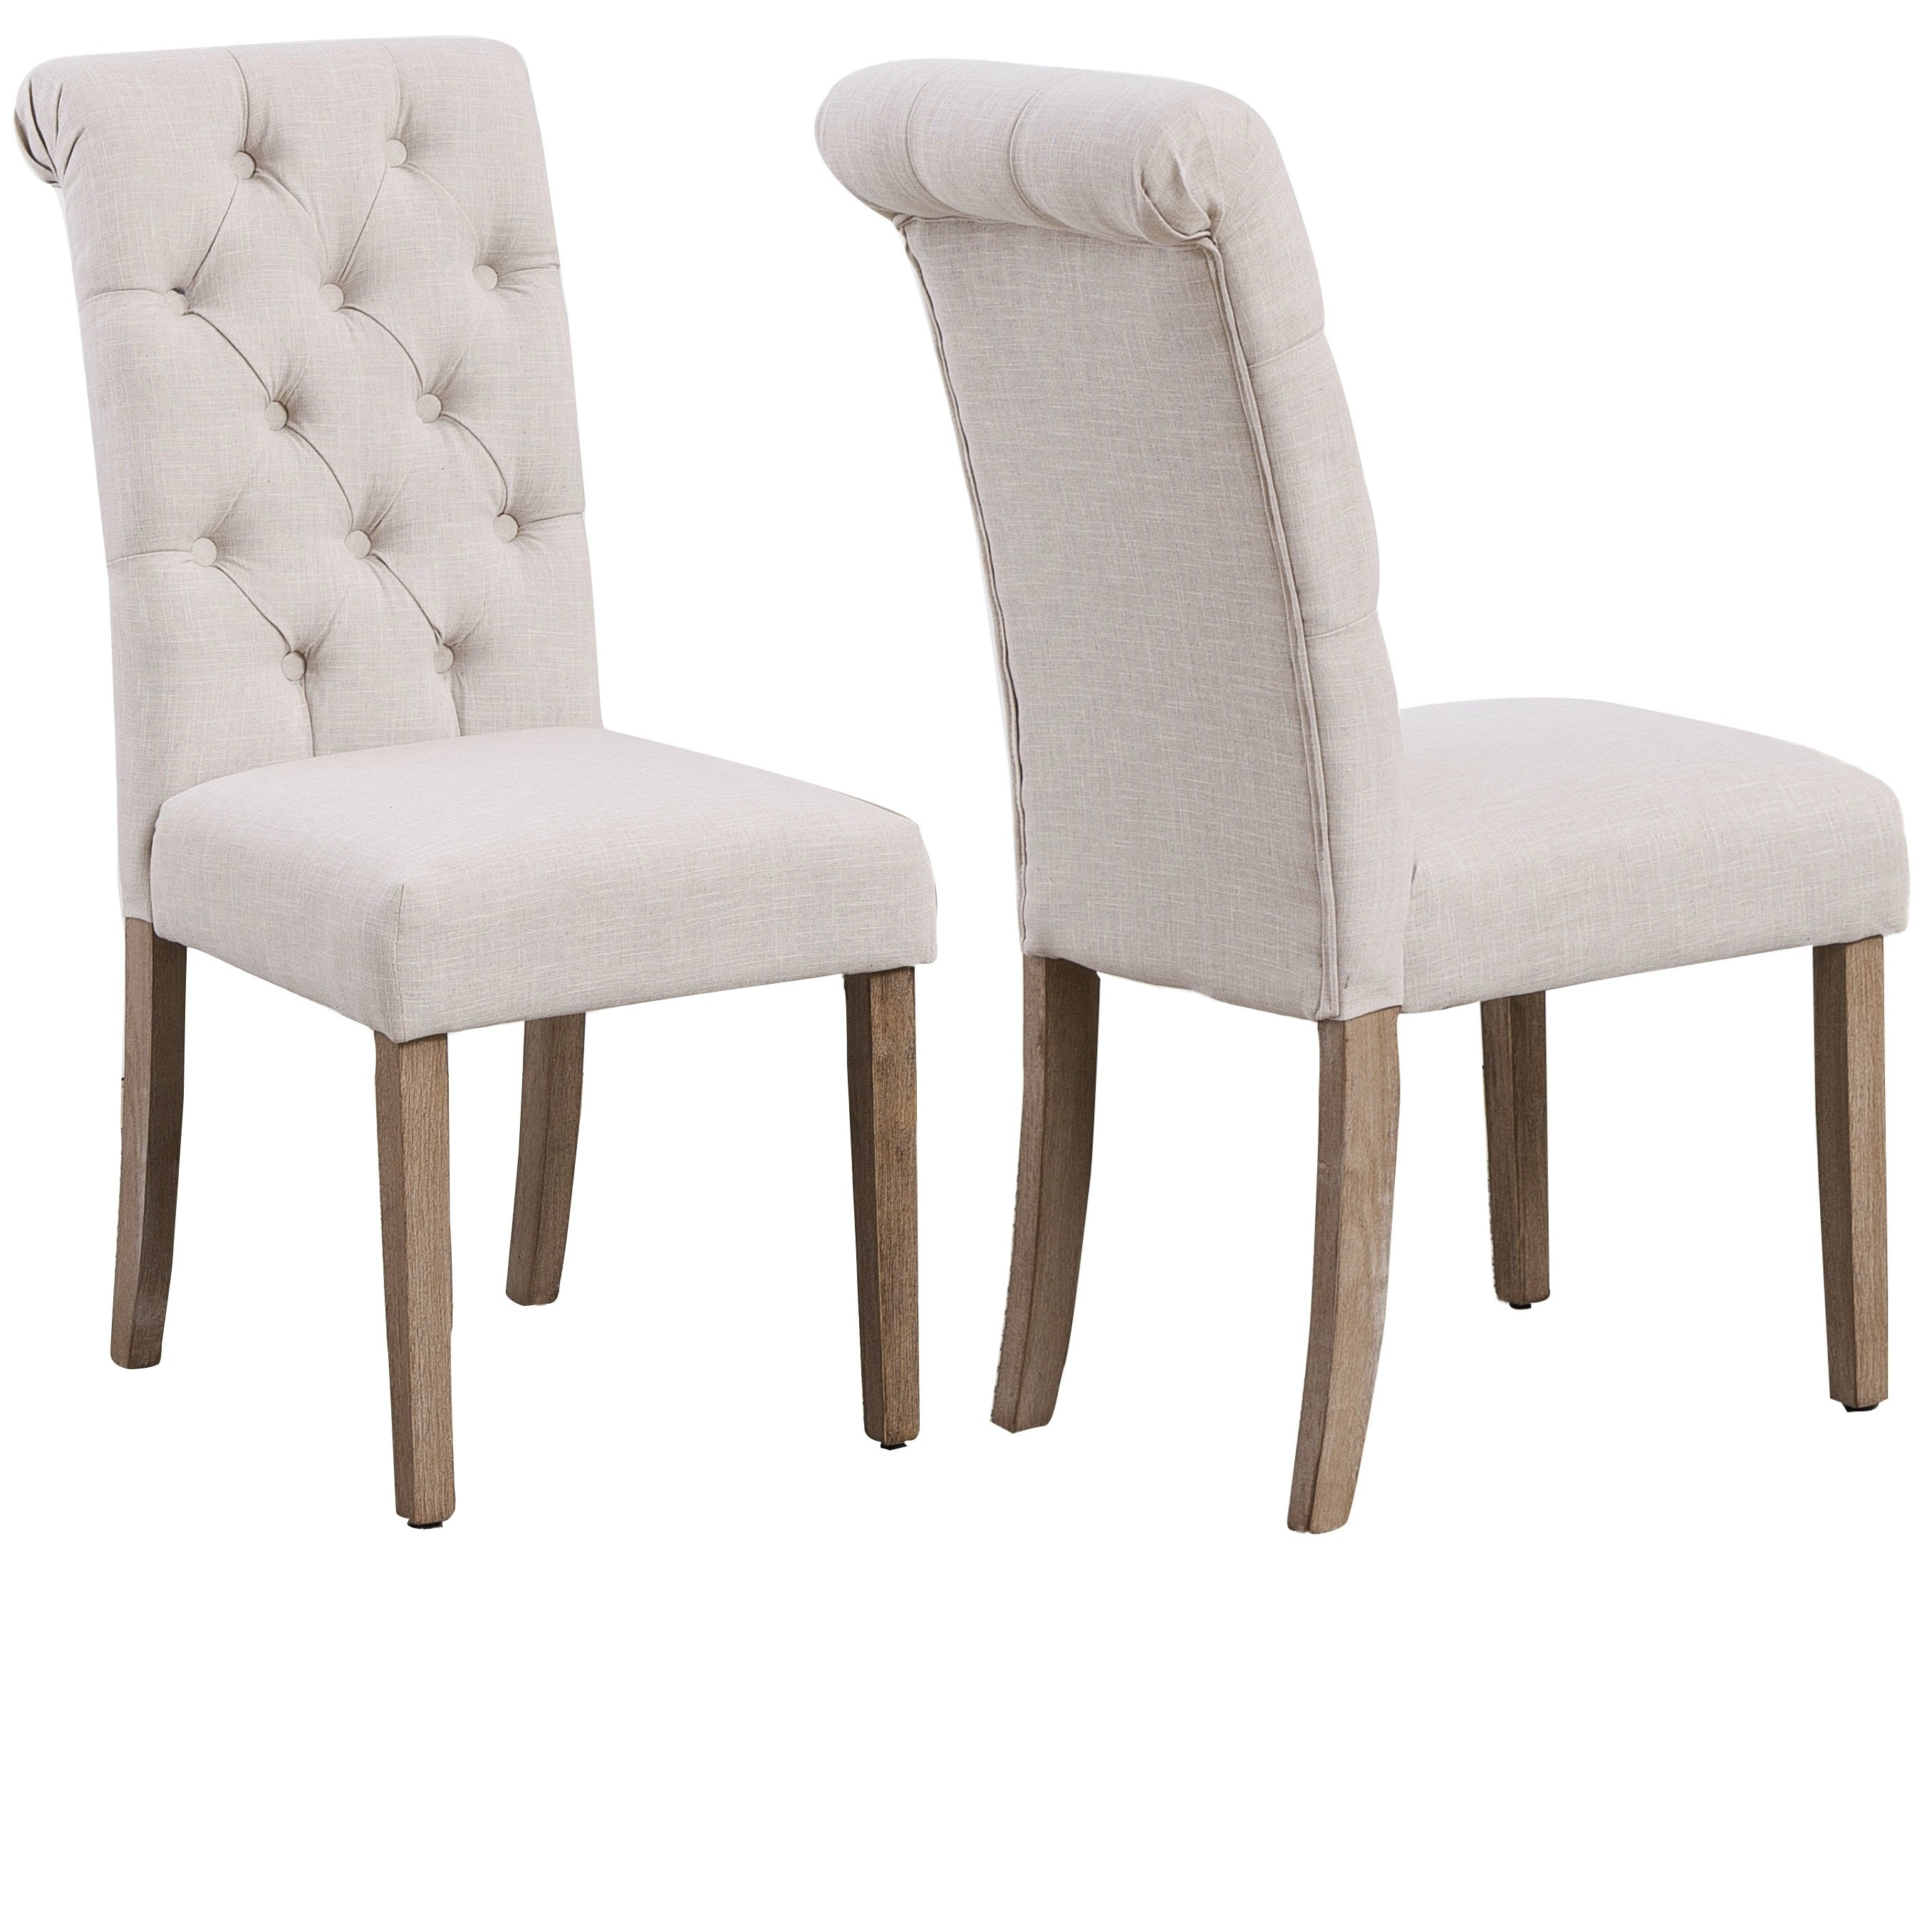 High Back Linen Ivory Tufted Upholstered Dining Chairs Set Of 2 Beige N A Overstock 29083430